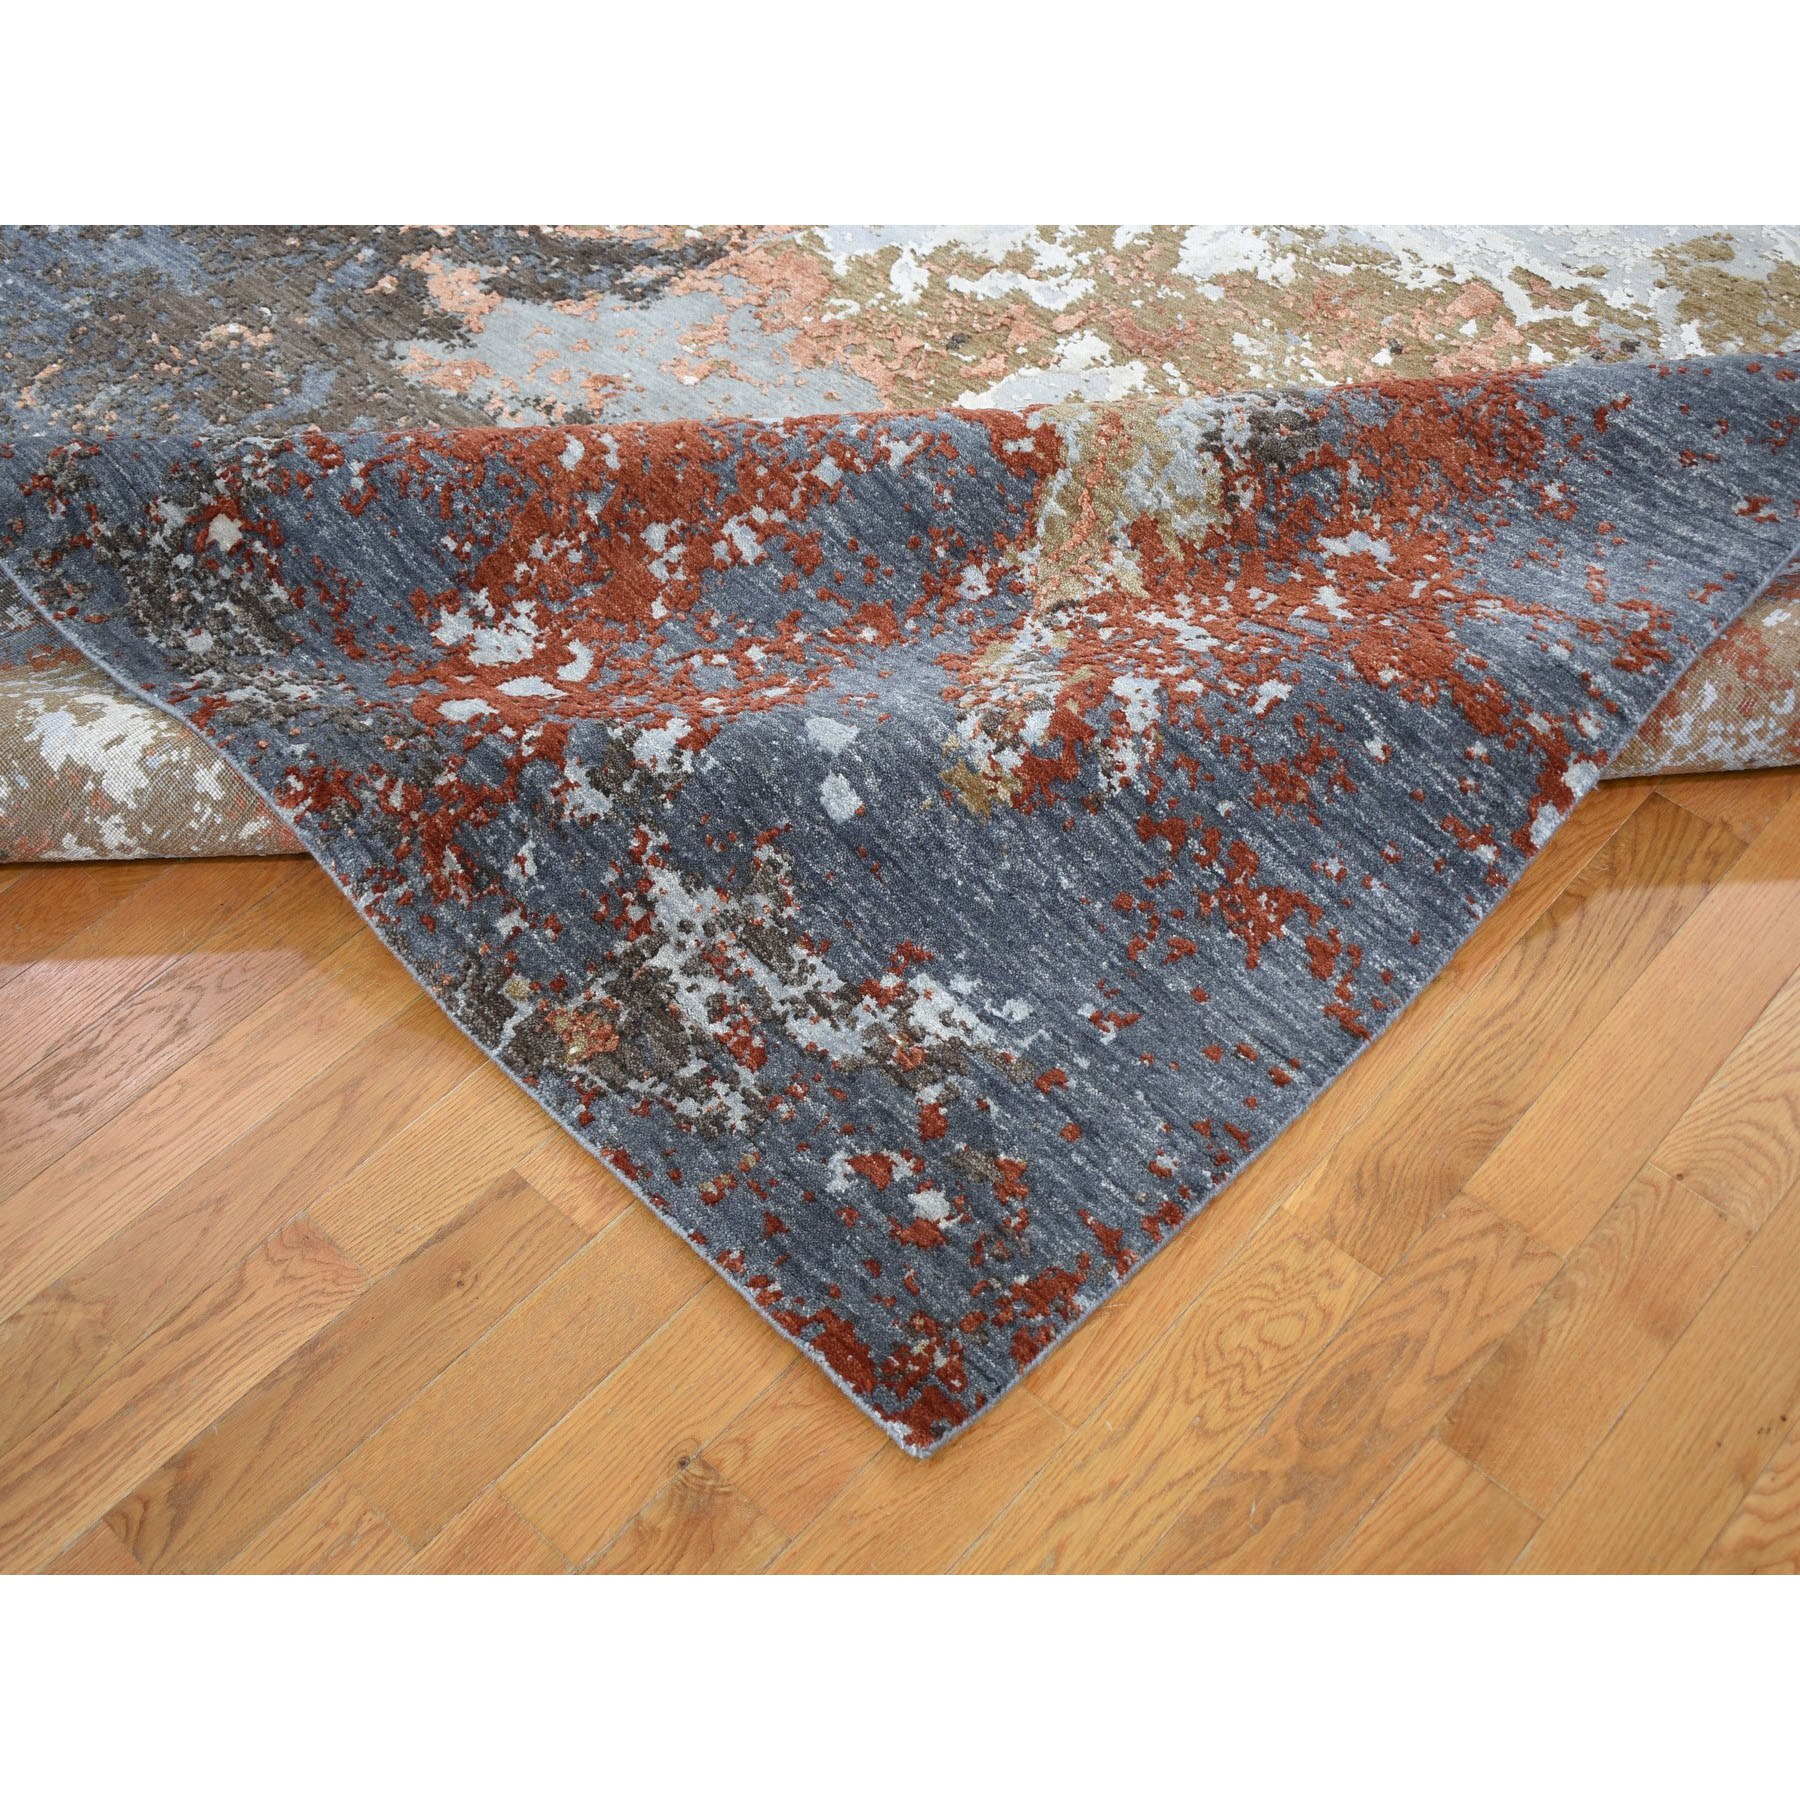 8'x10' Gray Abstract Design Wool And Silk Hi-Low Pile Denser Weave Hand Knotted Oriental Rug